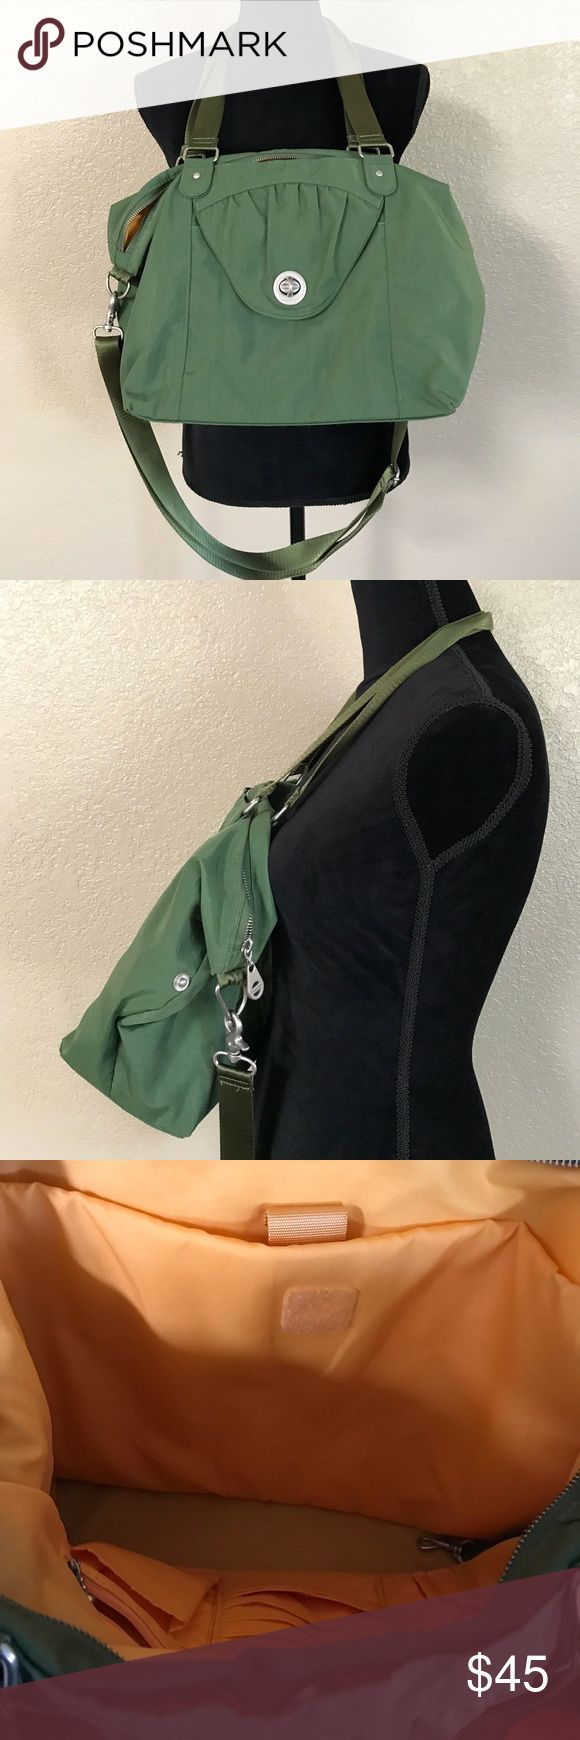 Baggalini army green bag Pre owned but in mint condition